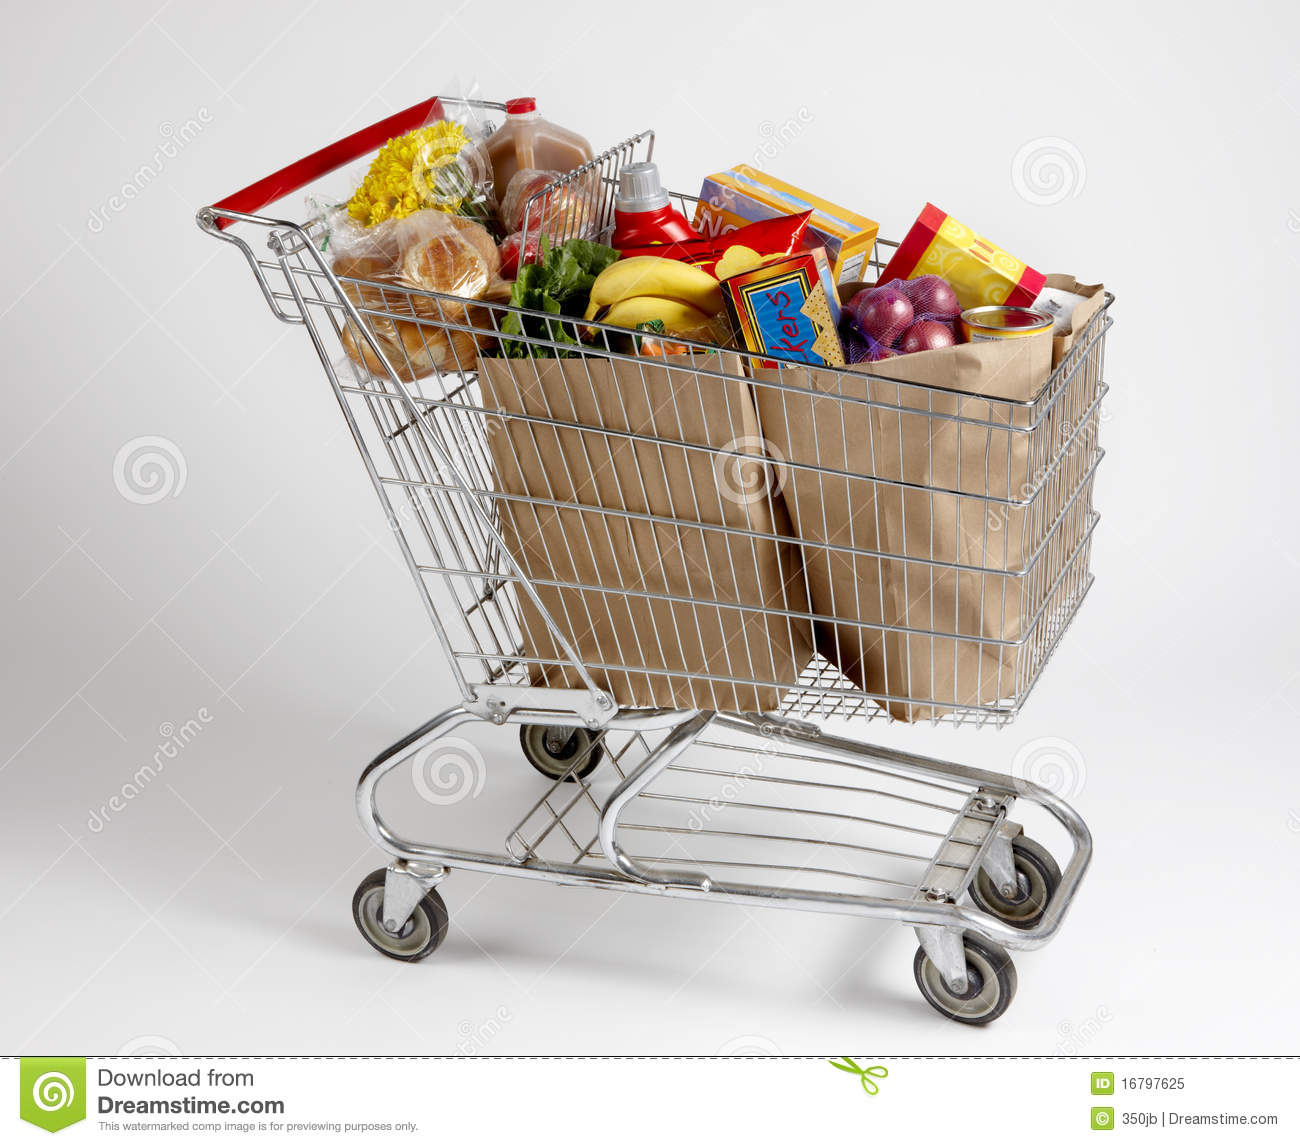 Shopping Cart Filled With Groceries Royalty Free Stock